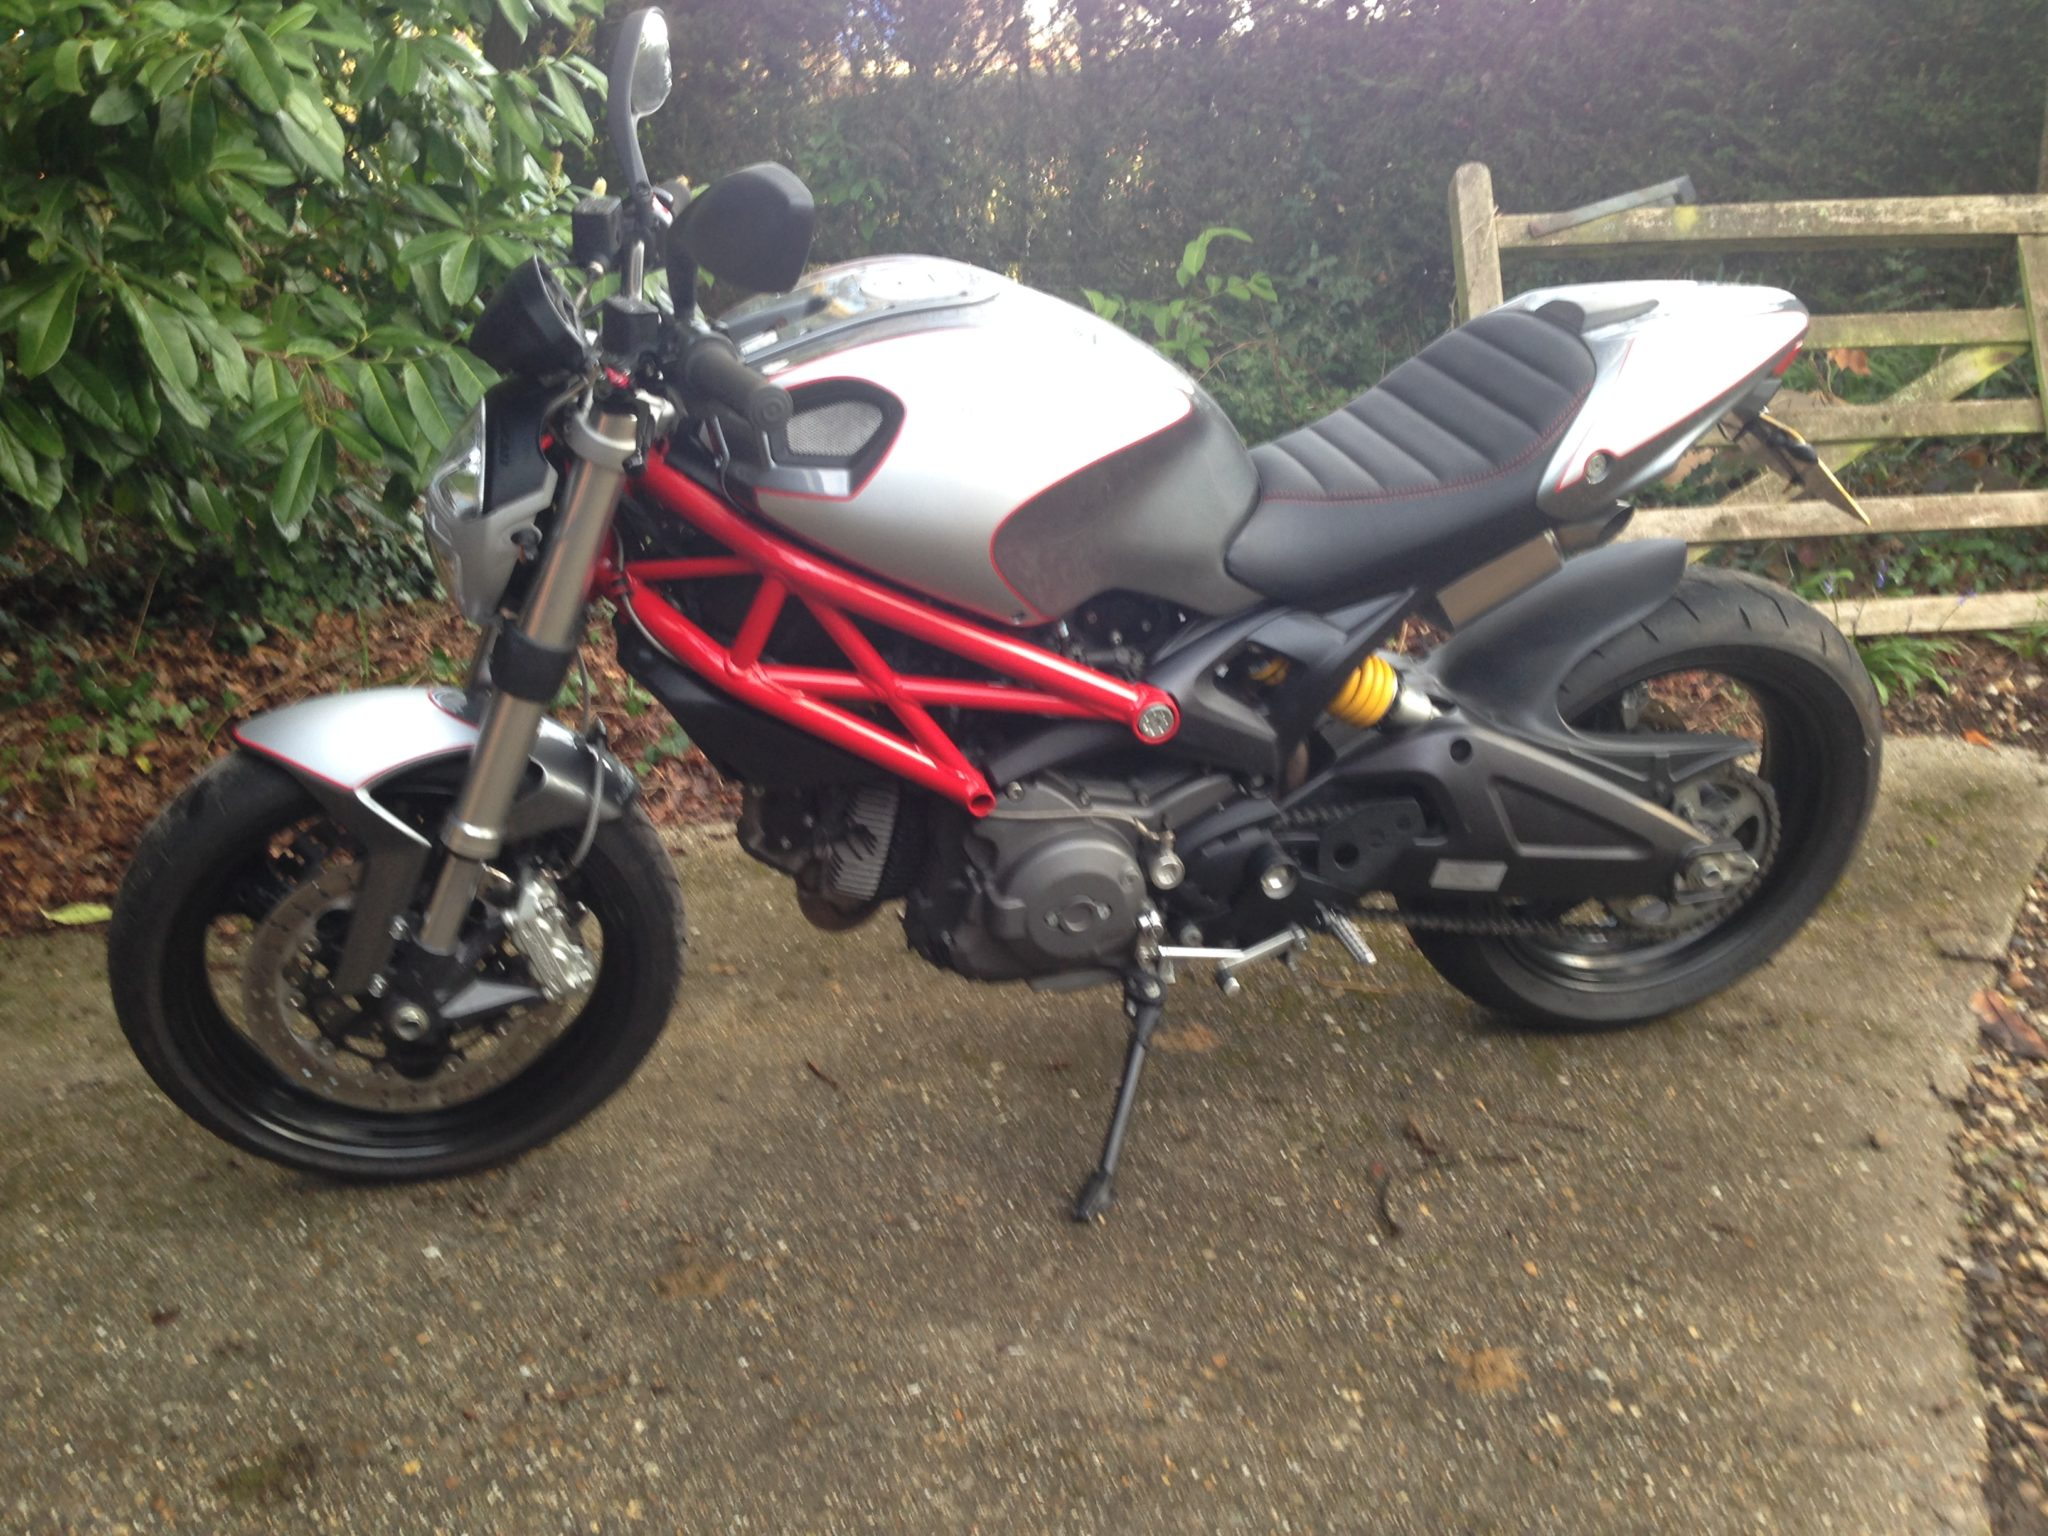 Peter Bevan – Ducati Monster 696